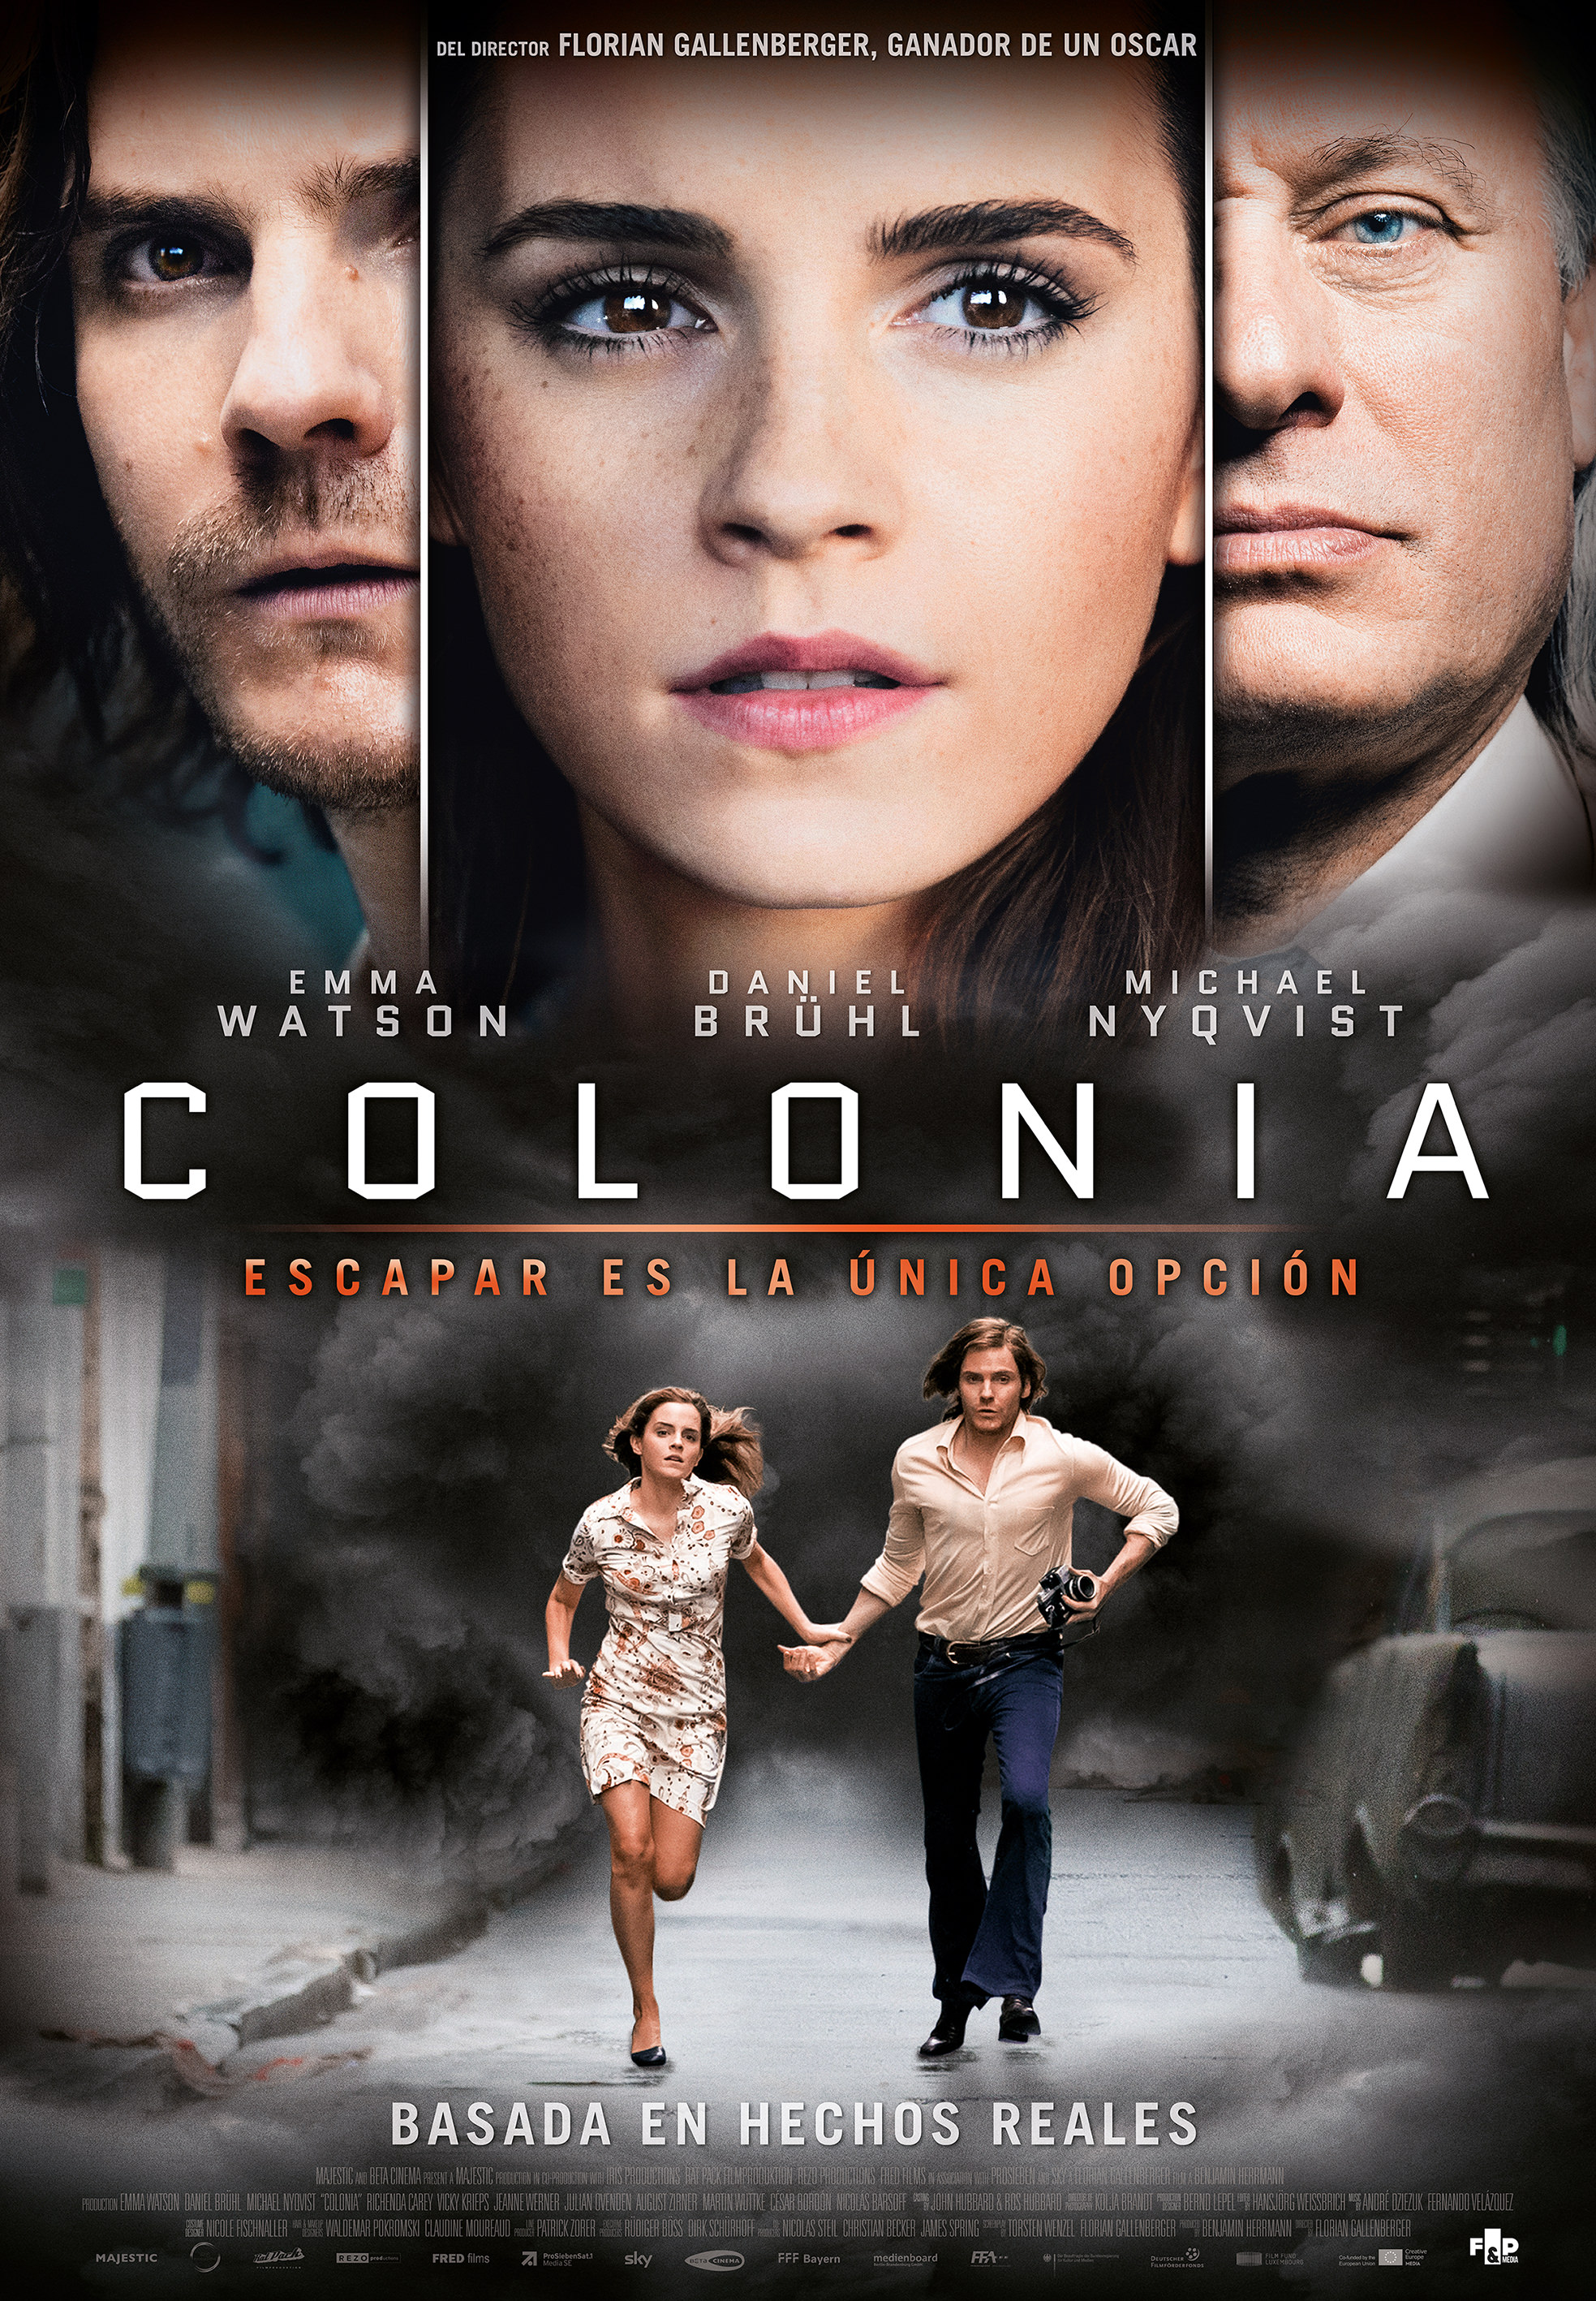 Colonia_Poster_68x98.indd